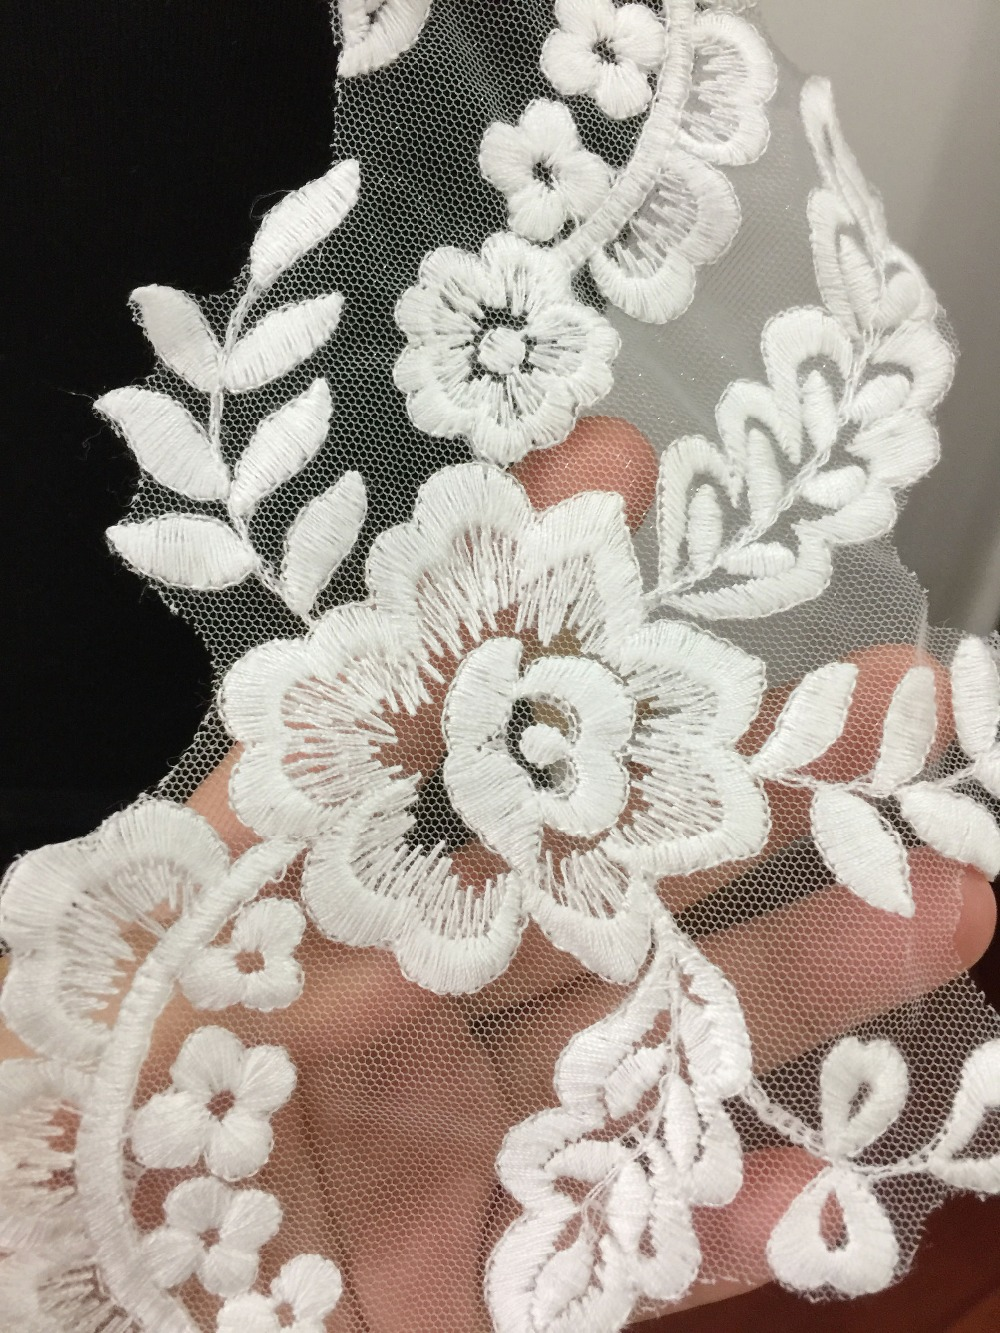 5 pairs ivory cotton floral lace applique pair for wedding dress bodice headpiece bridal lace flower wholesale lace flower in Patches from Home Garden